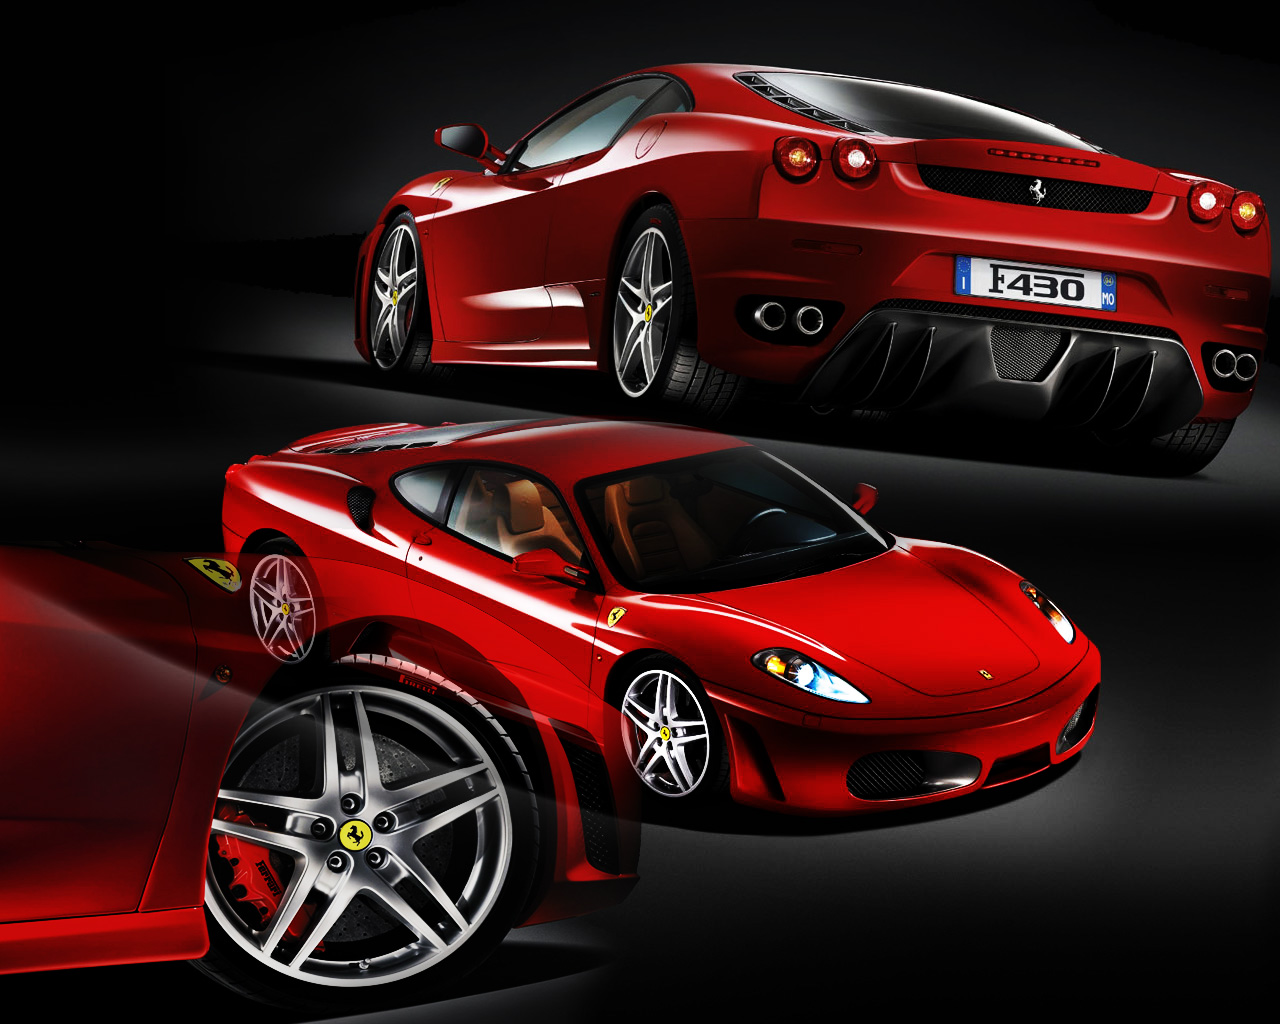 Ferrari Cars 5 Car Background Wallpaper Hd Wallpaper Car